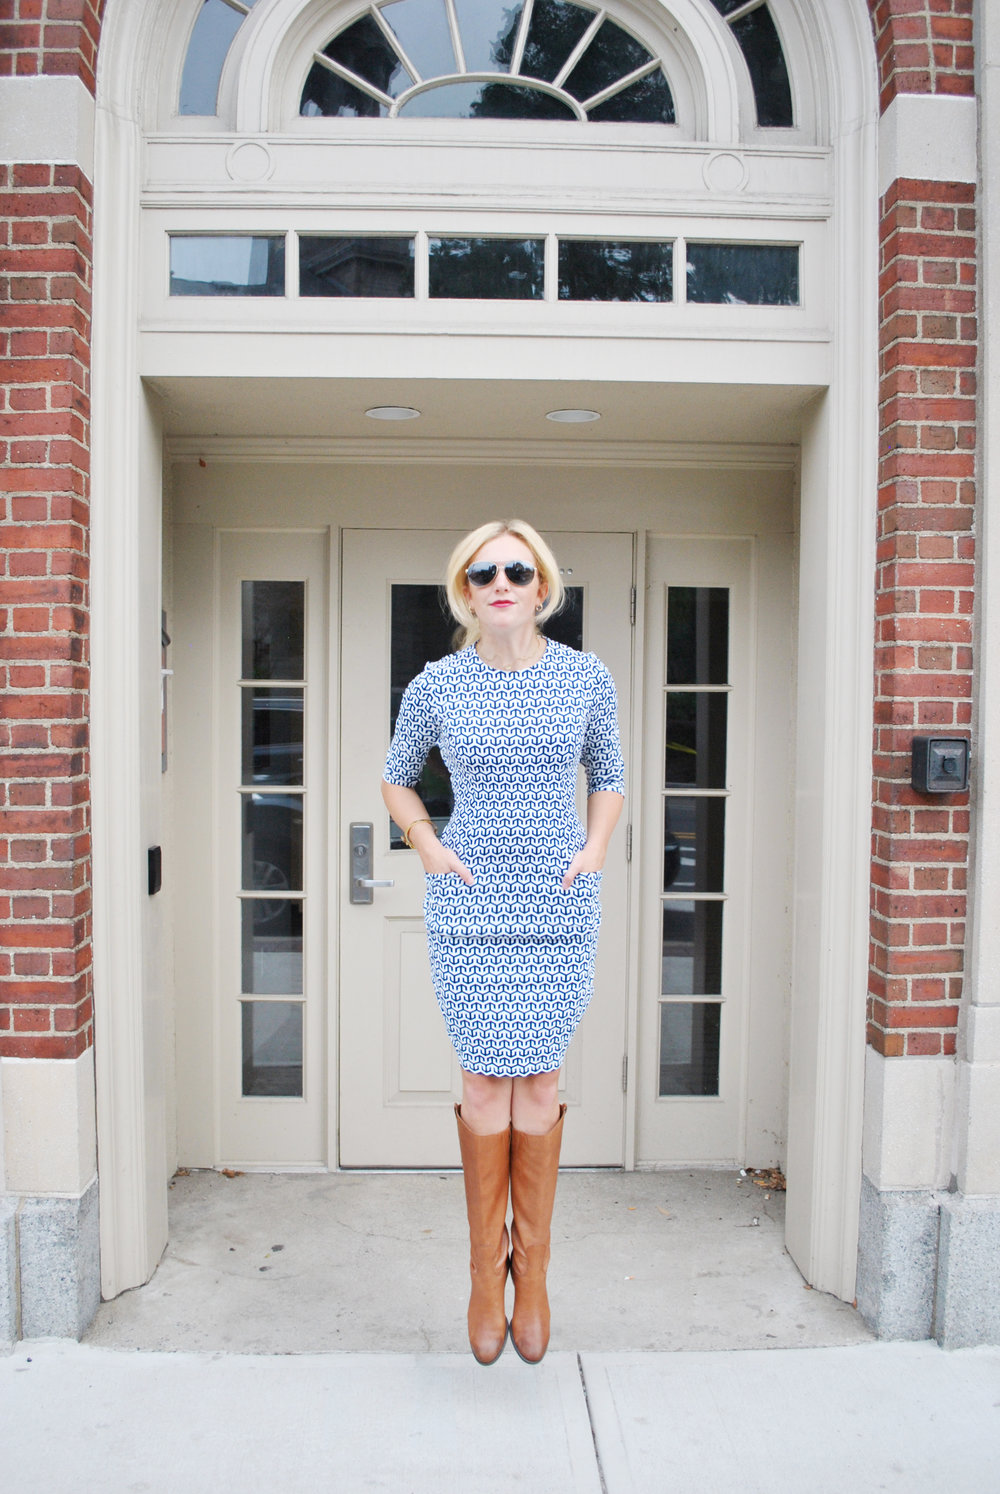 thoughtfulwish // j.mclaughlin // navy dress // preppy outfit // fall outfit // layered outfit // boston // new england fashion // boston fashion // fblog // fashion blogger // meredith wish